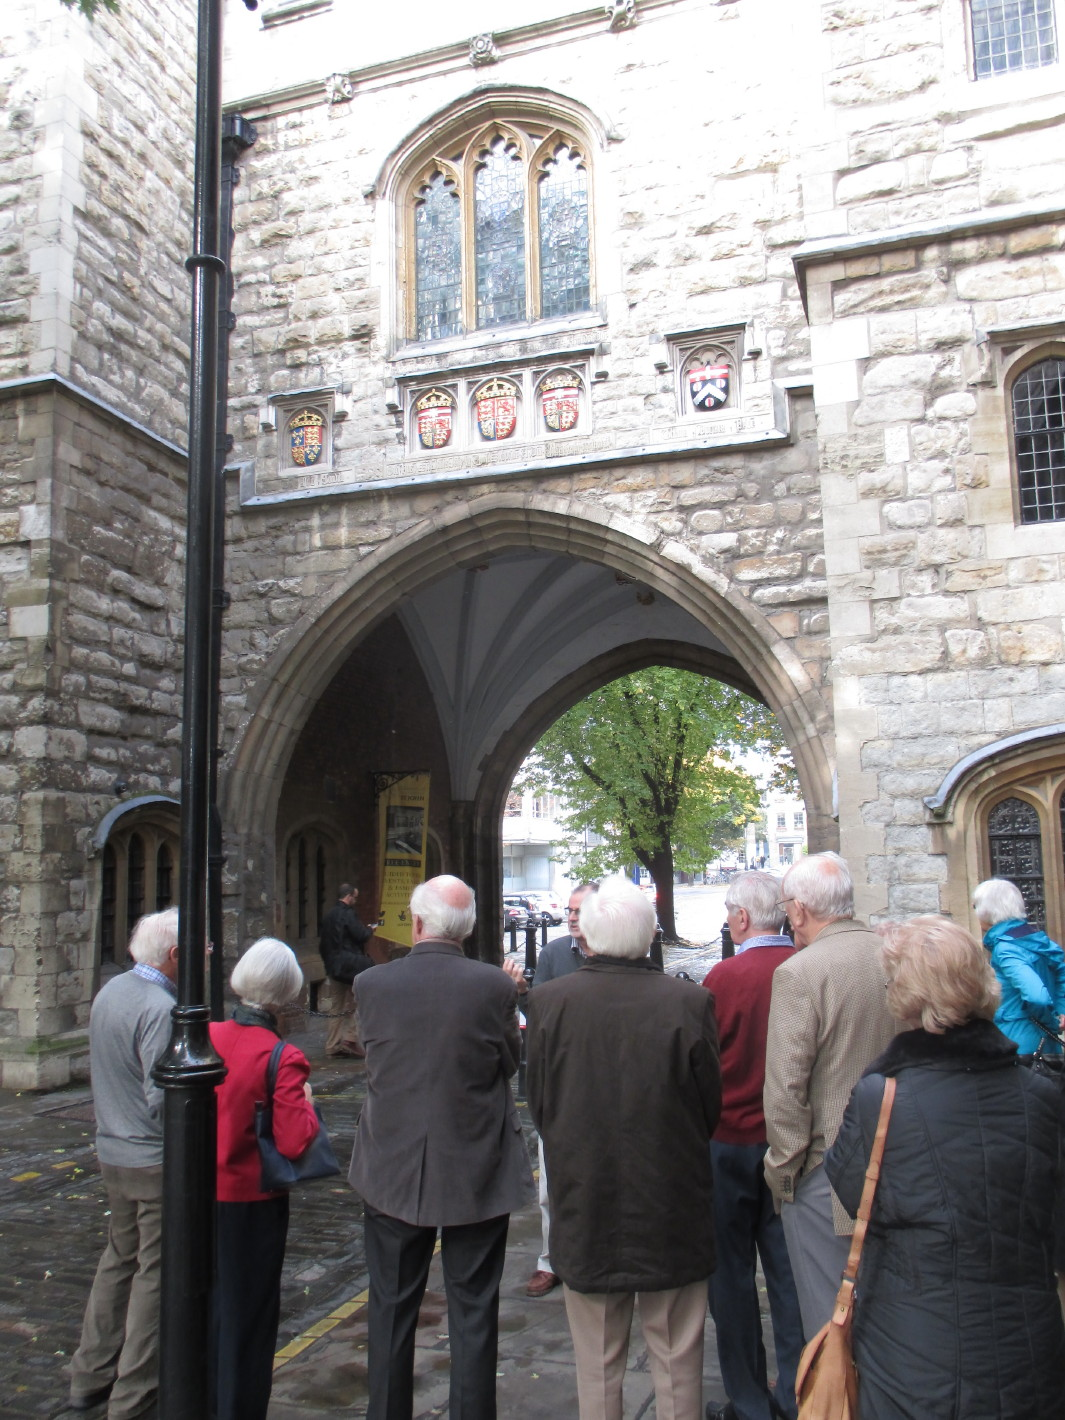 Museum of the Order of St John, entrance archway